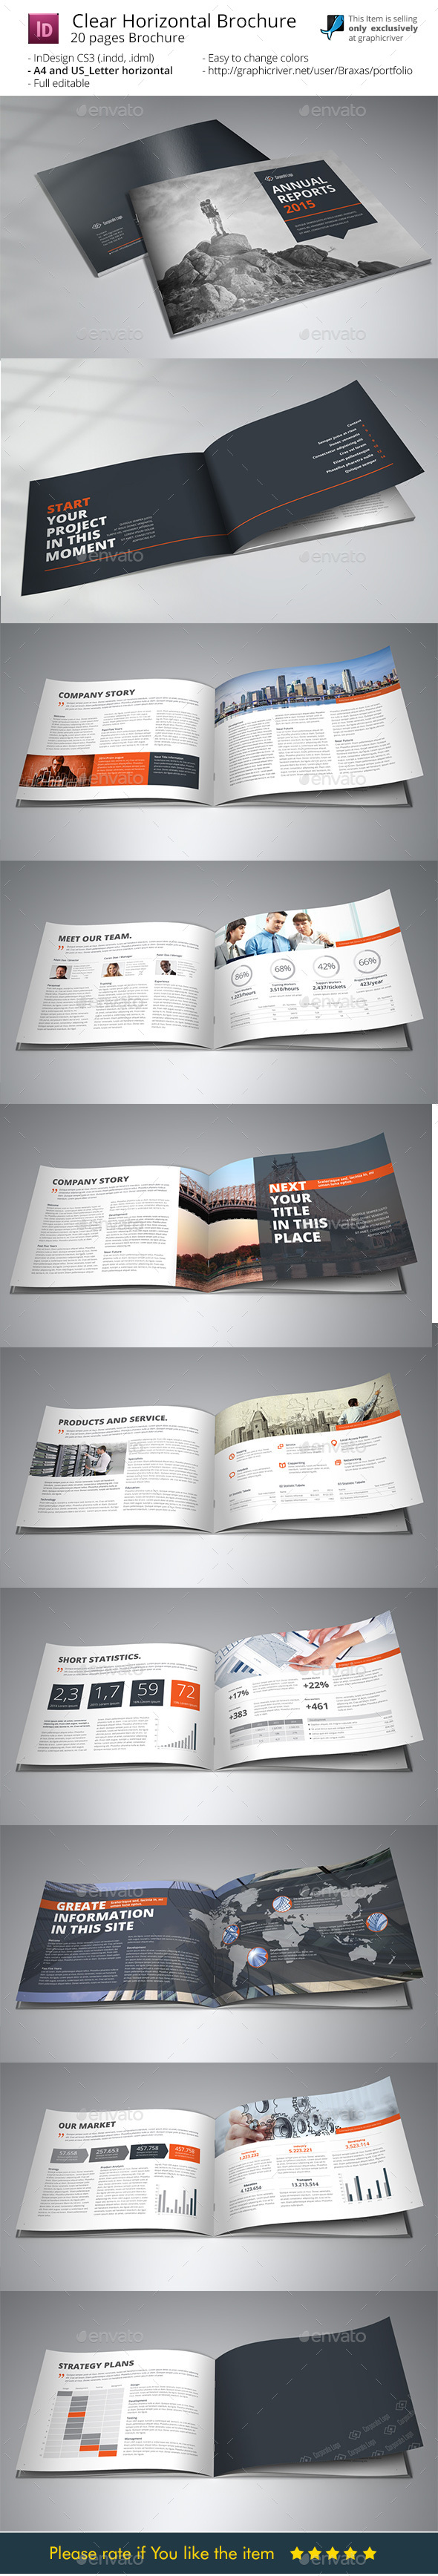 Clean Horizontal Brochure - Indesigne Template - Informational Brochures